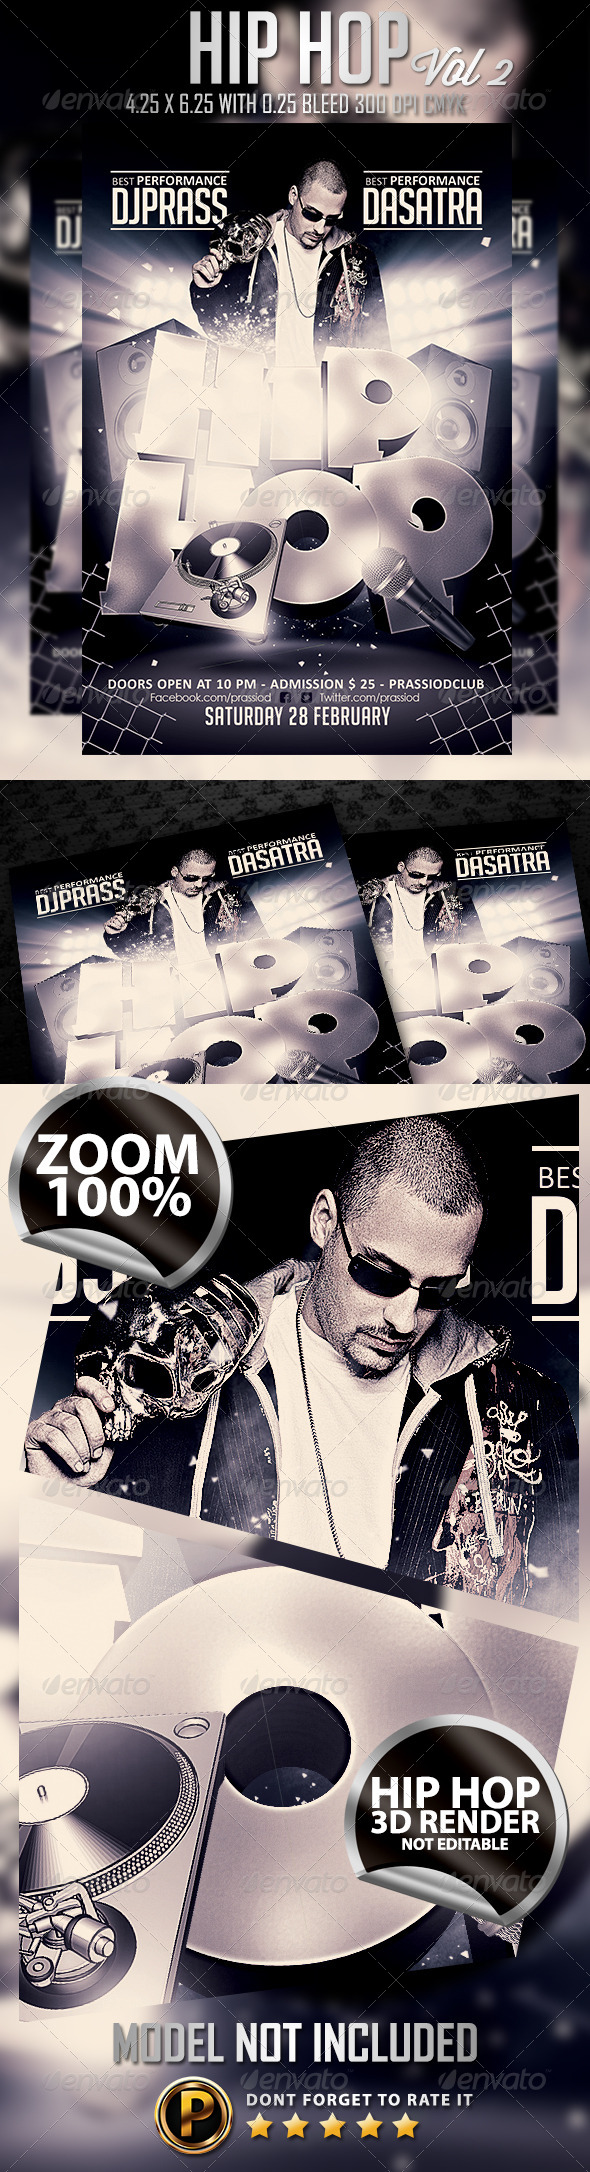 Hip Hop Flyer Template vol 2 - Clubs & Parties Events